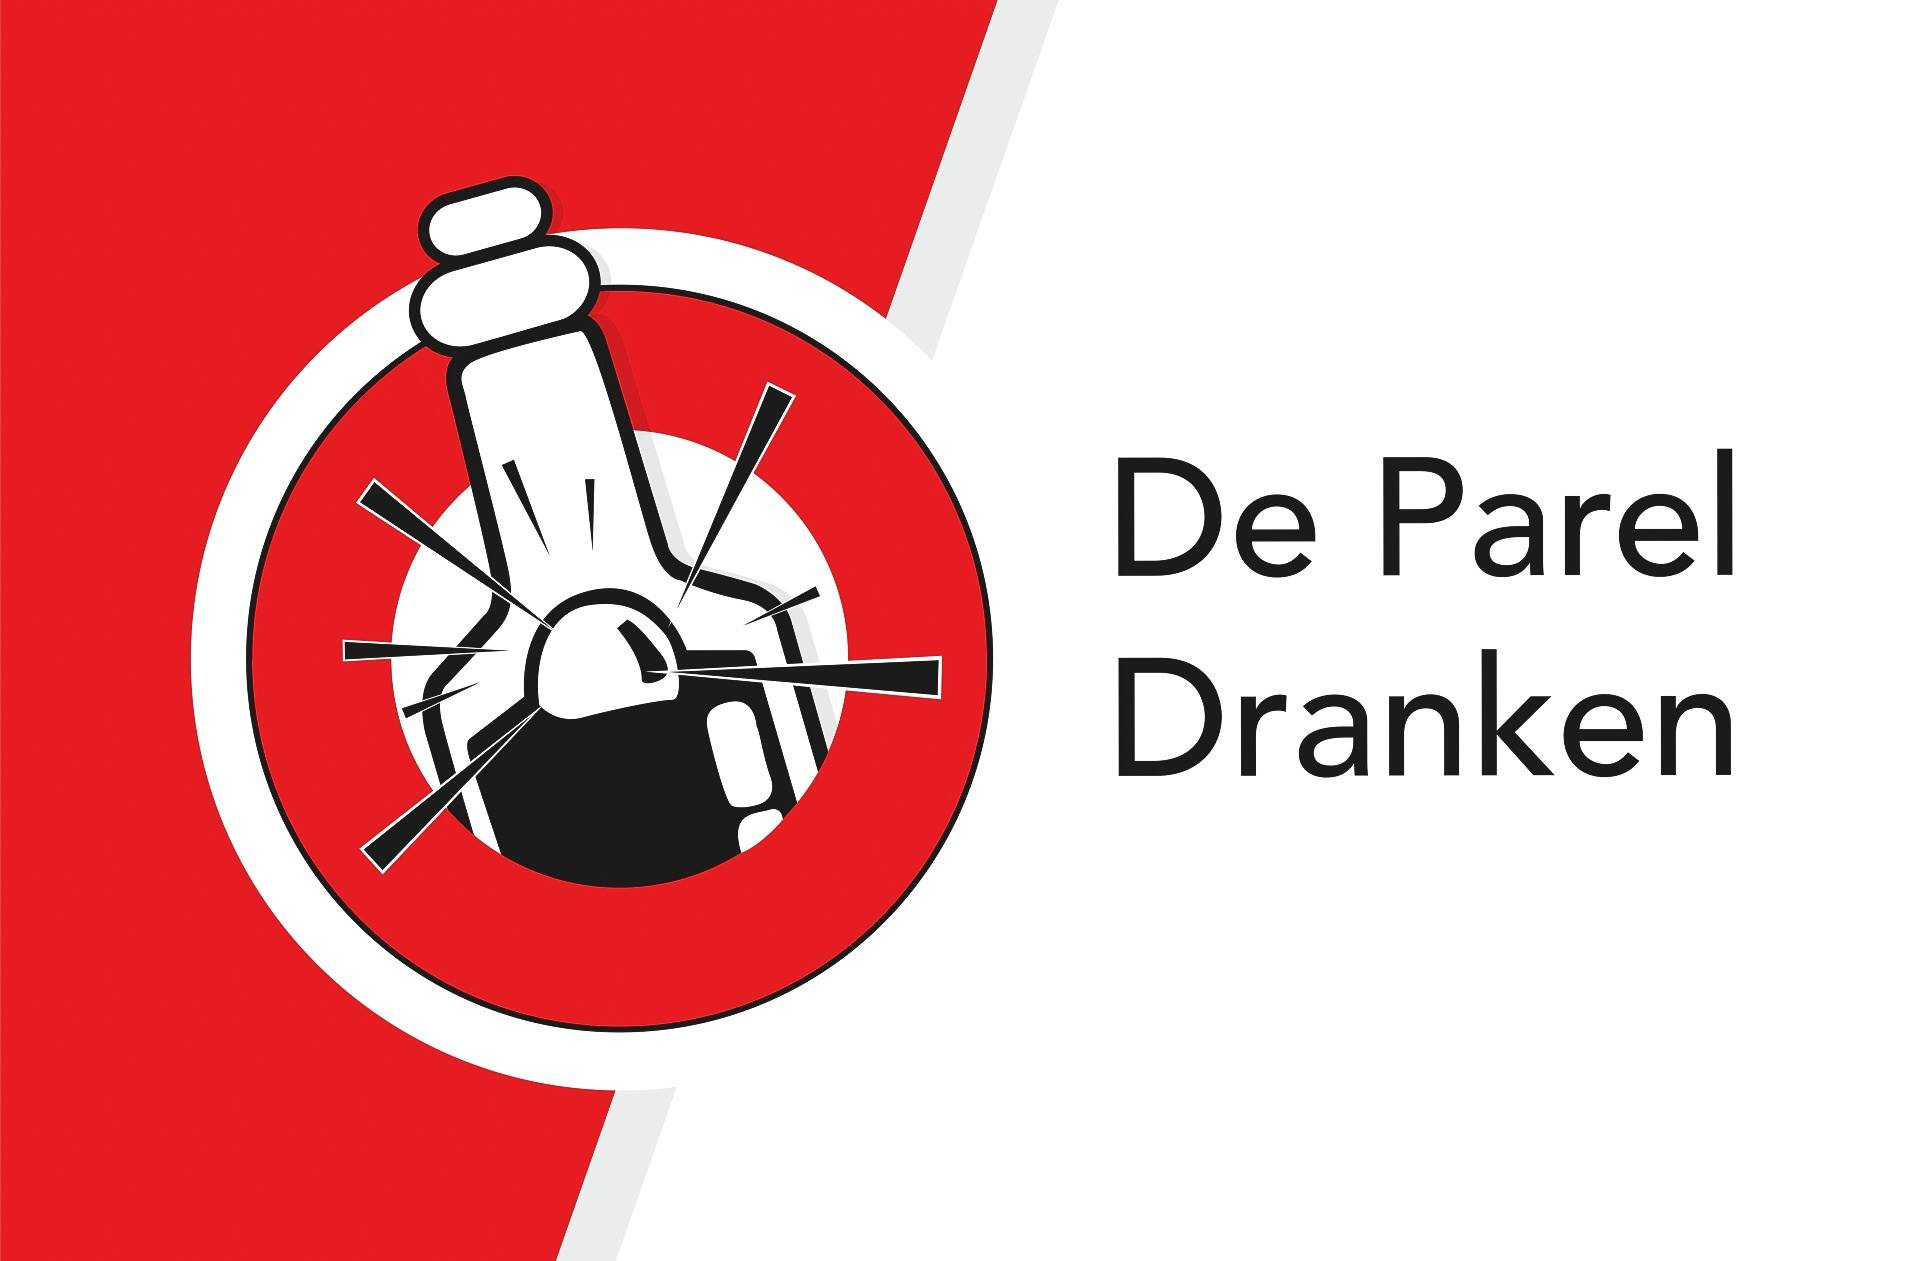 De Parel Dranken